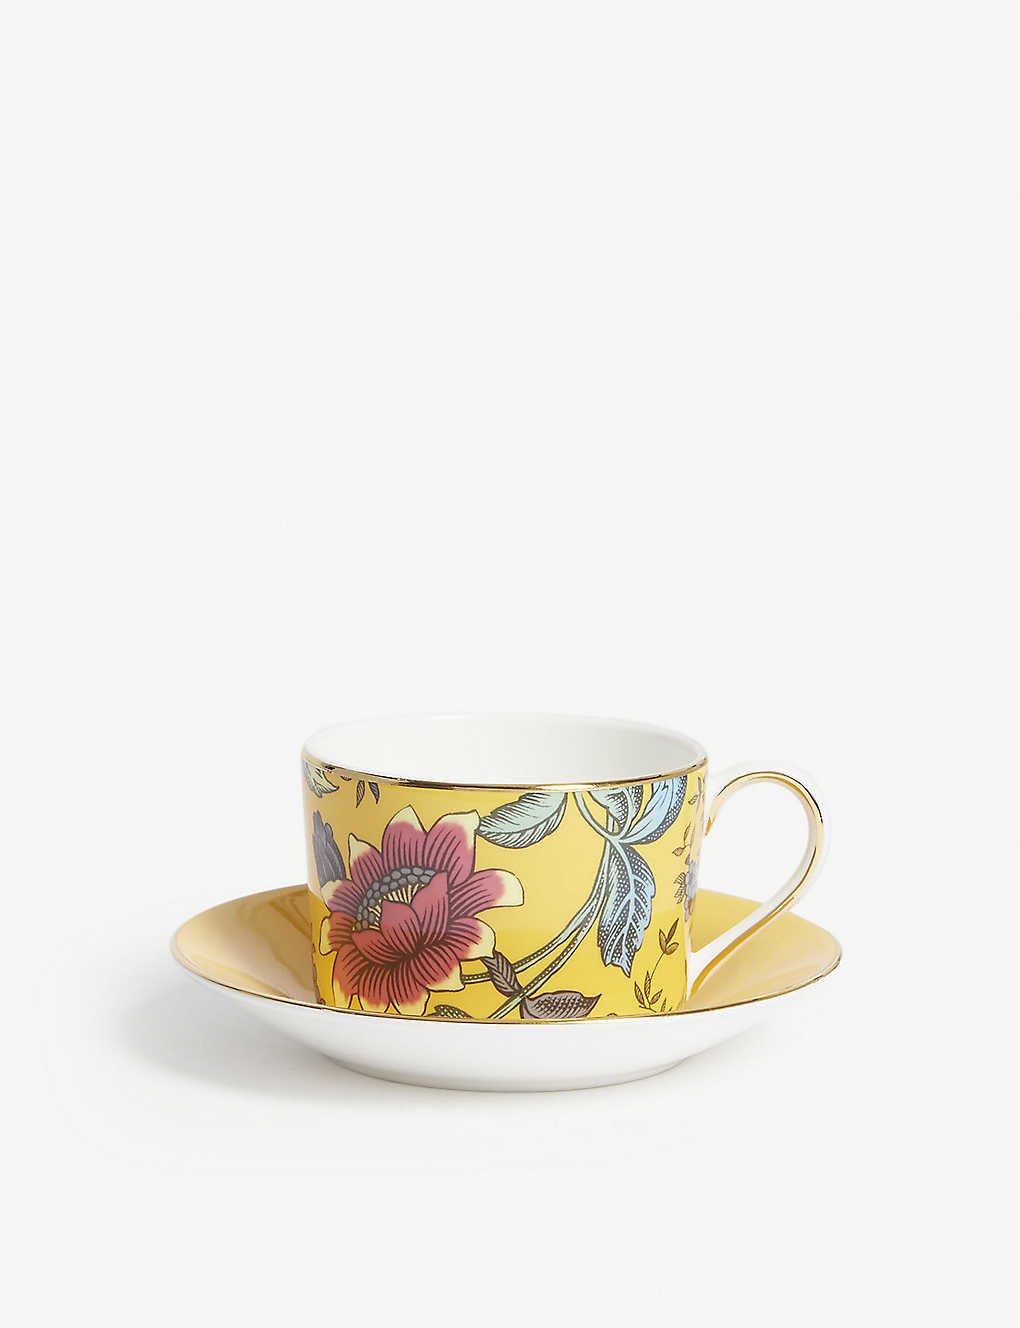 WEDGWOOD: Wonderlust Yellow Tonquin teacup and saucer